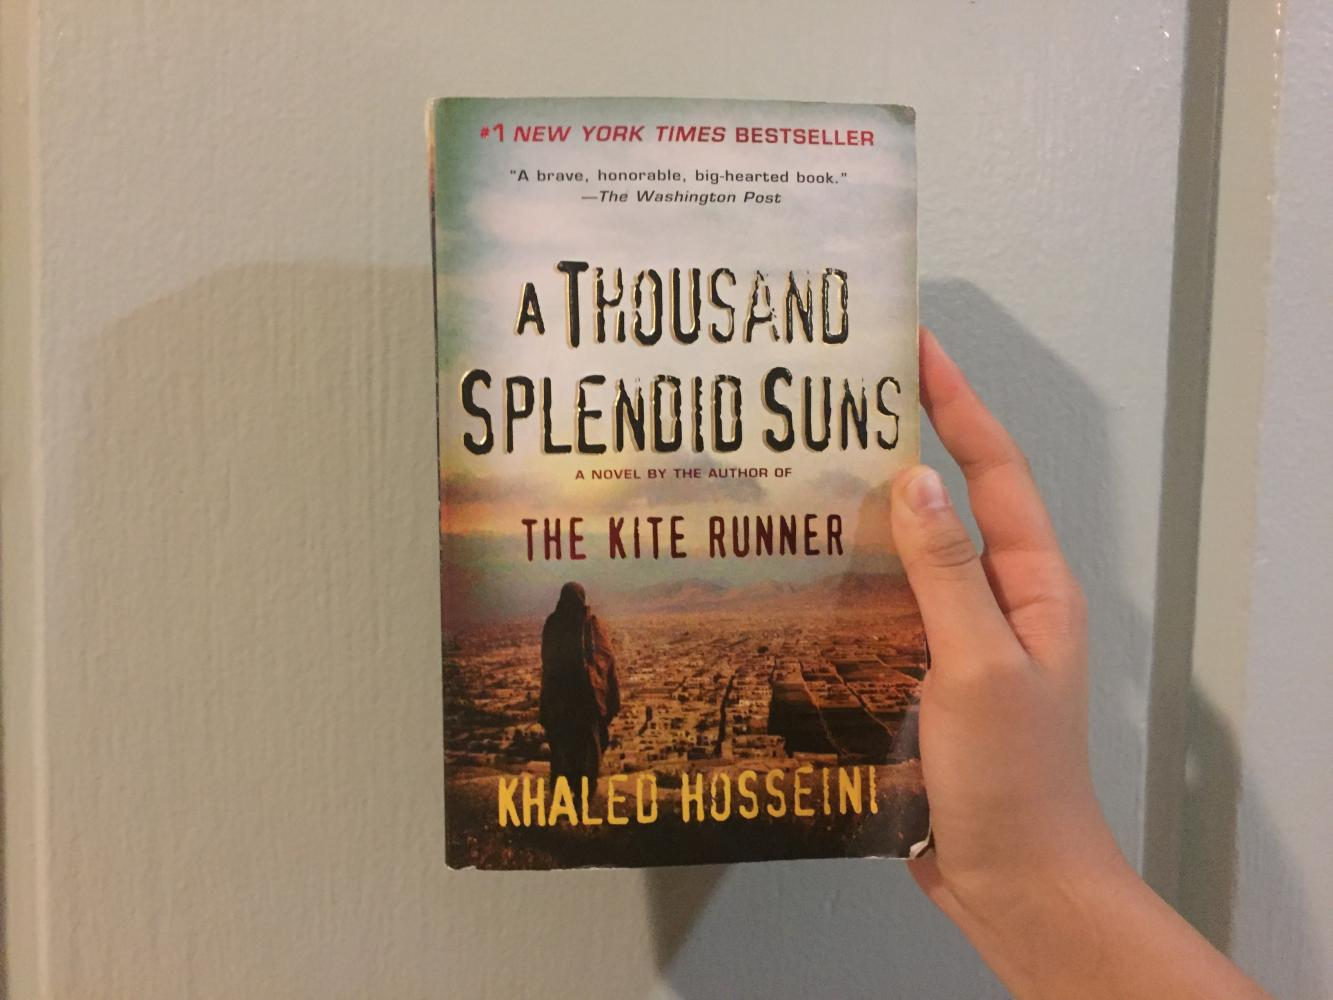 a thousand splendid suns by khaled hosseini A thousand splendid suns is a 2007 novel by afghan-american author khaled hosseiniit is his second, following his bestselling 2003 debut, the kite runnermariam is an illegitimate child, and suffers from both the stigma surrounding her birth along with the abuse she faces throughout her marriage.